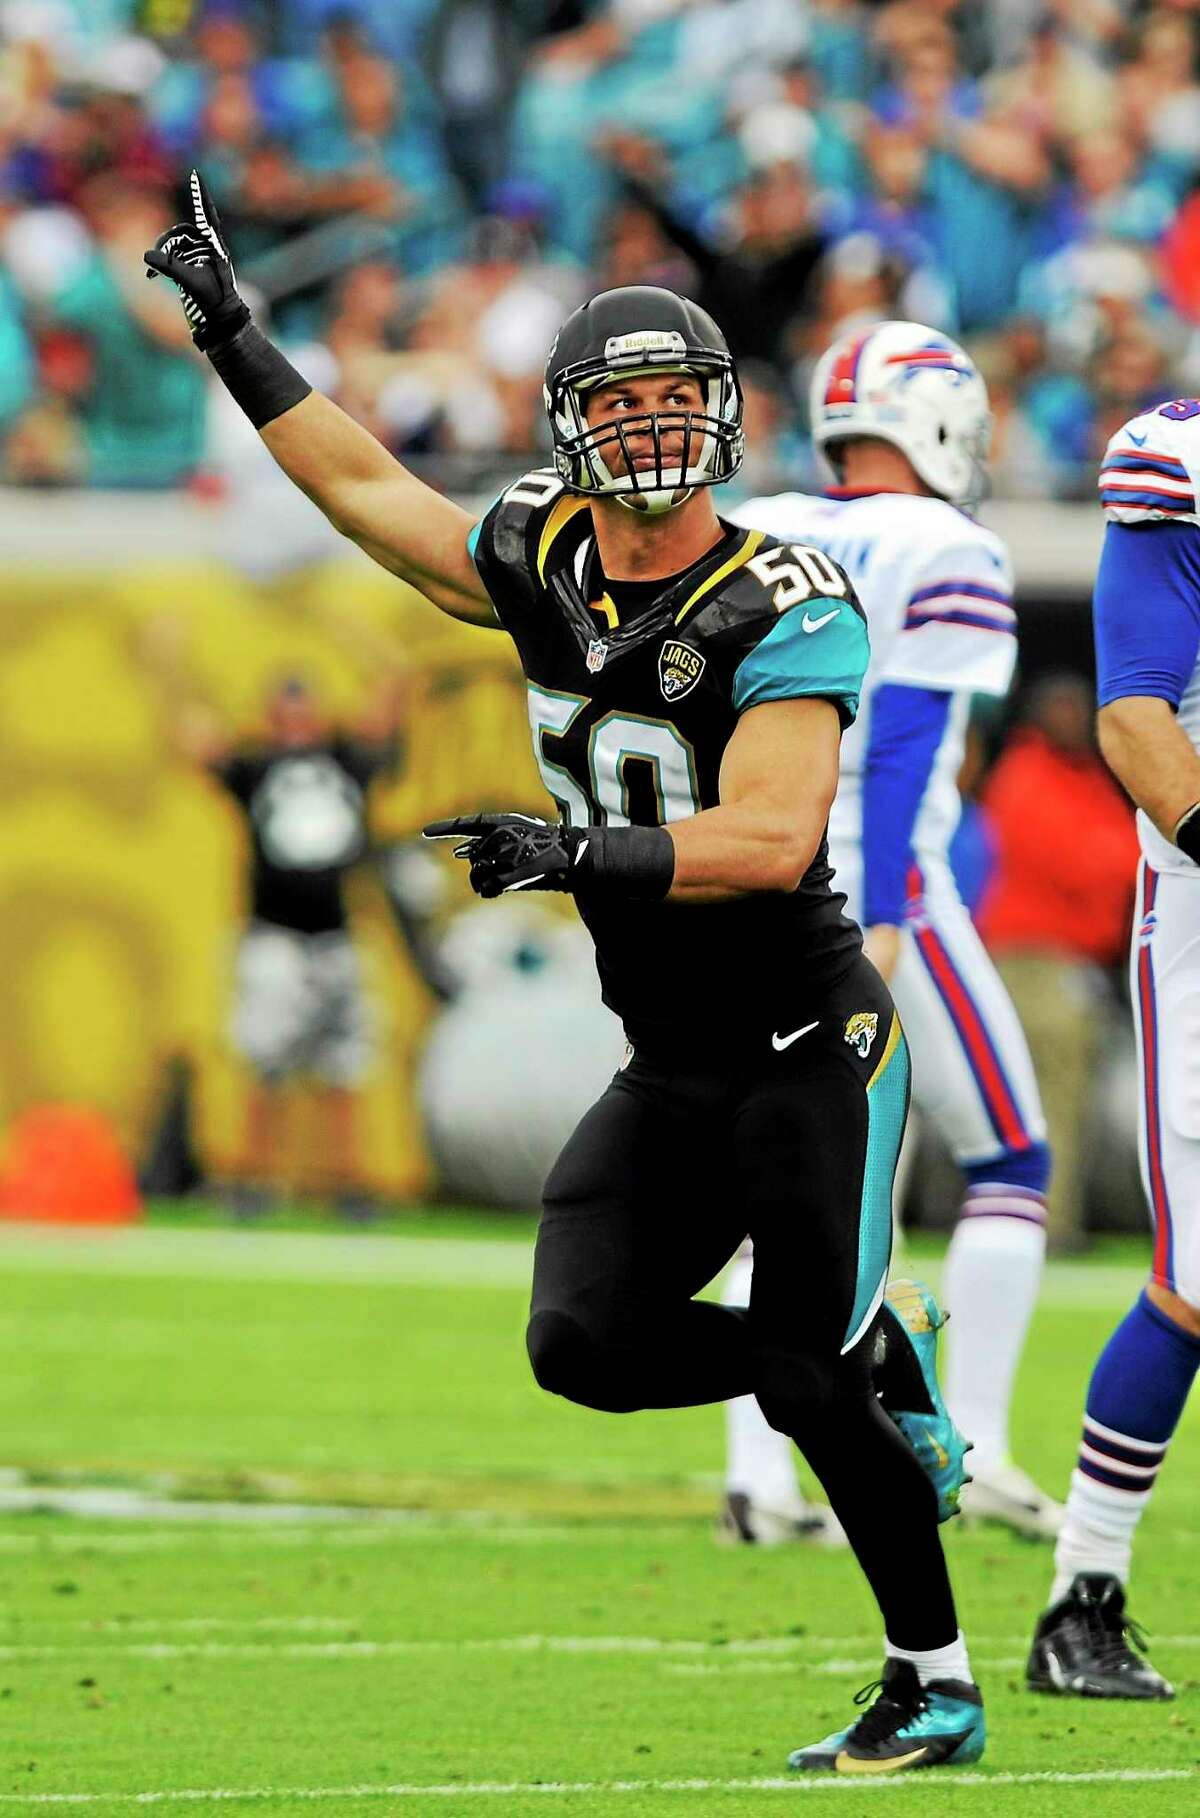 Jaguars outside linebacker Russell Allen (50) celebrates a missed field goal by the Buffalo Bills during the final game of his career on Dec. 15, 2013, in Jacksonville, Fla. Allen suffered a stroke during the game and is retiring.